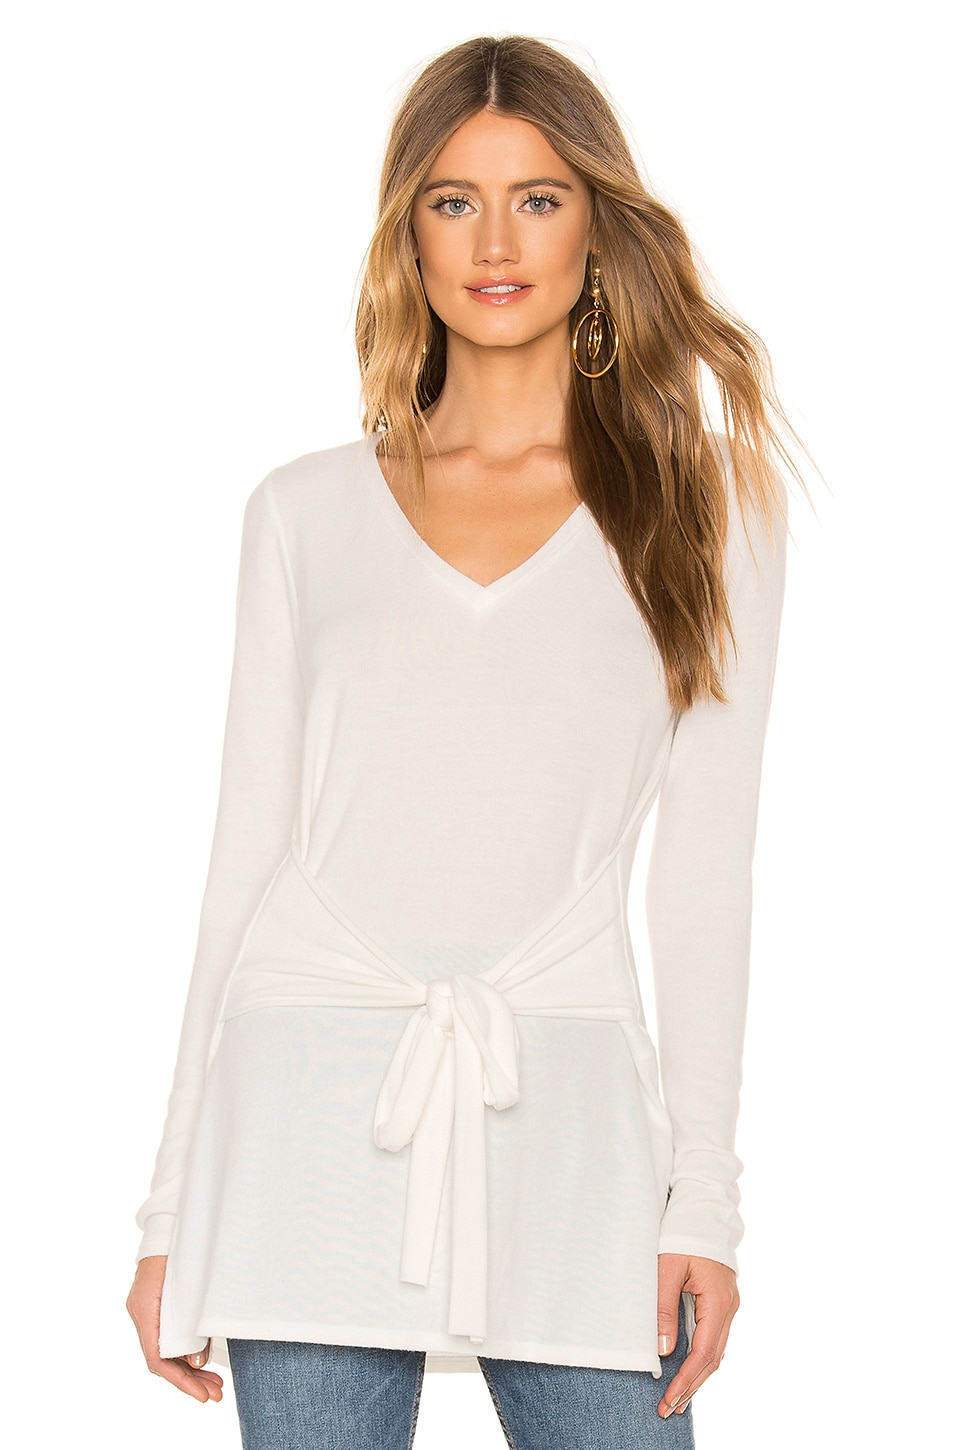 LA Made x REVOLVE Elliot Tunic Top in Ivory